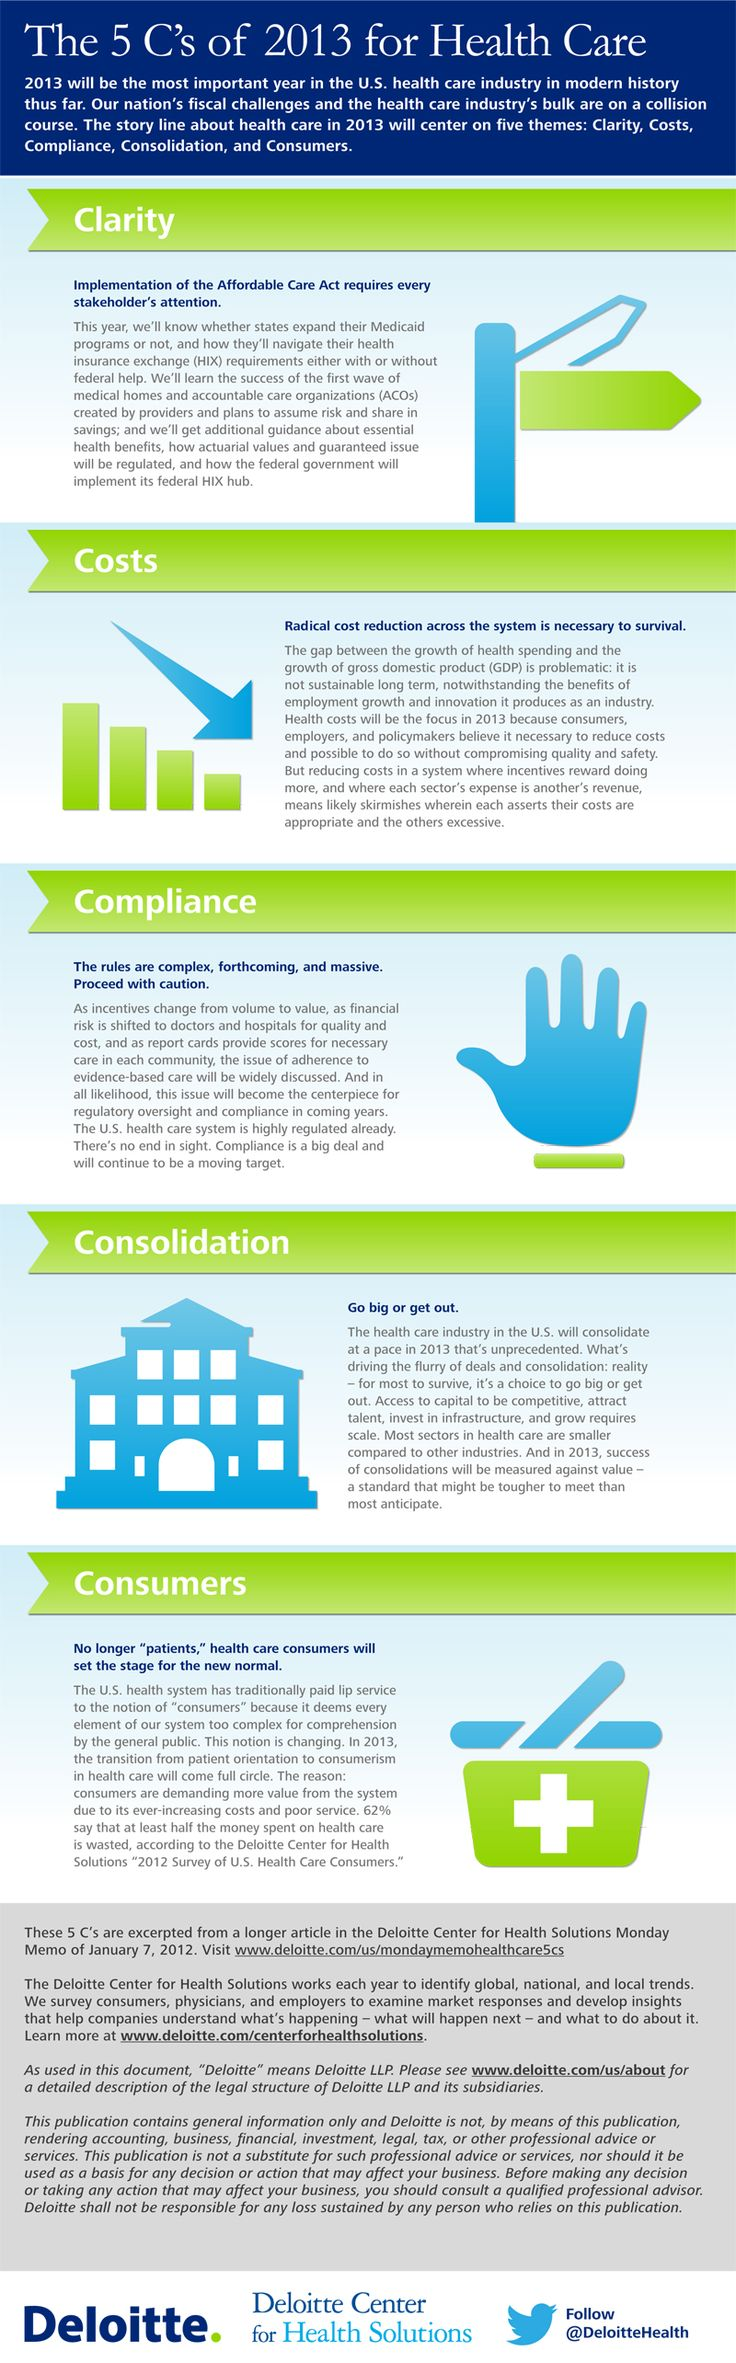 Deloitte-Center-Health-Solutions-View-Blog-5-Five-Cs-2013-Healthcare-care-infographic-image-picture